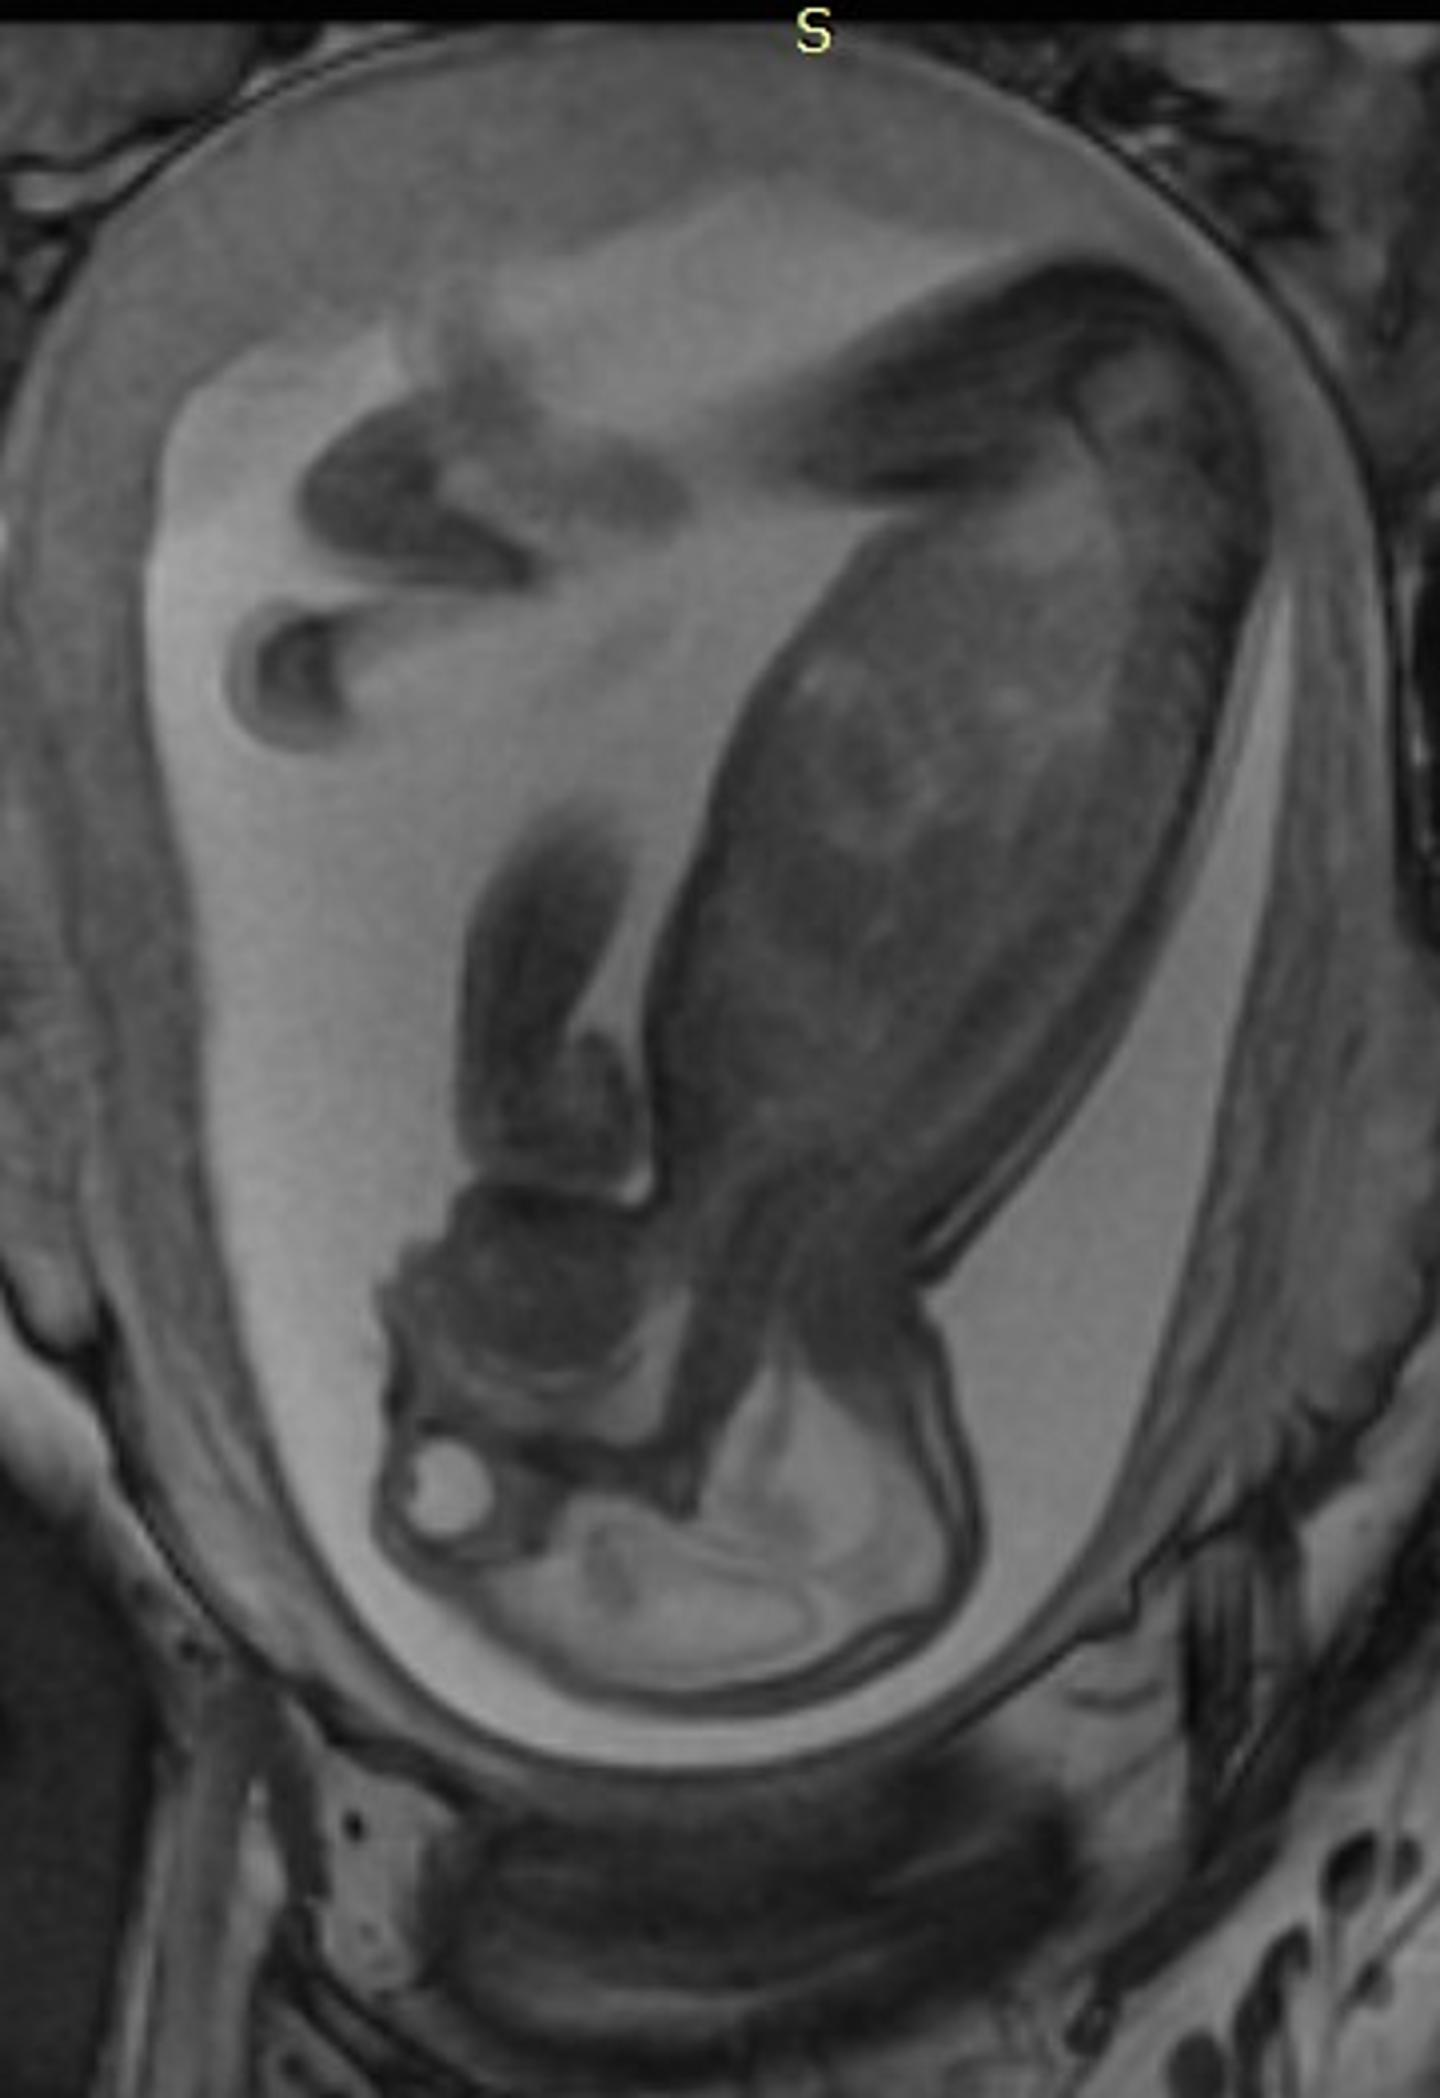 Figure 2: Side View of Fetus